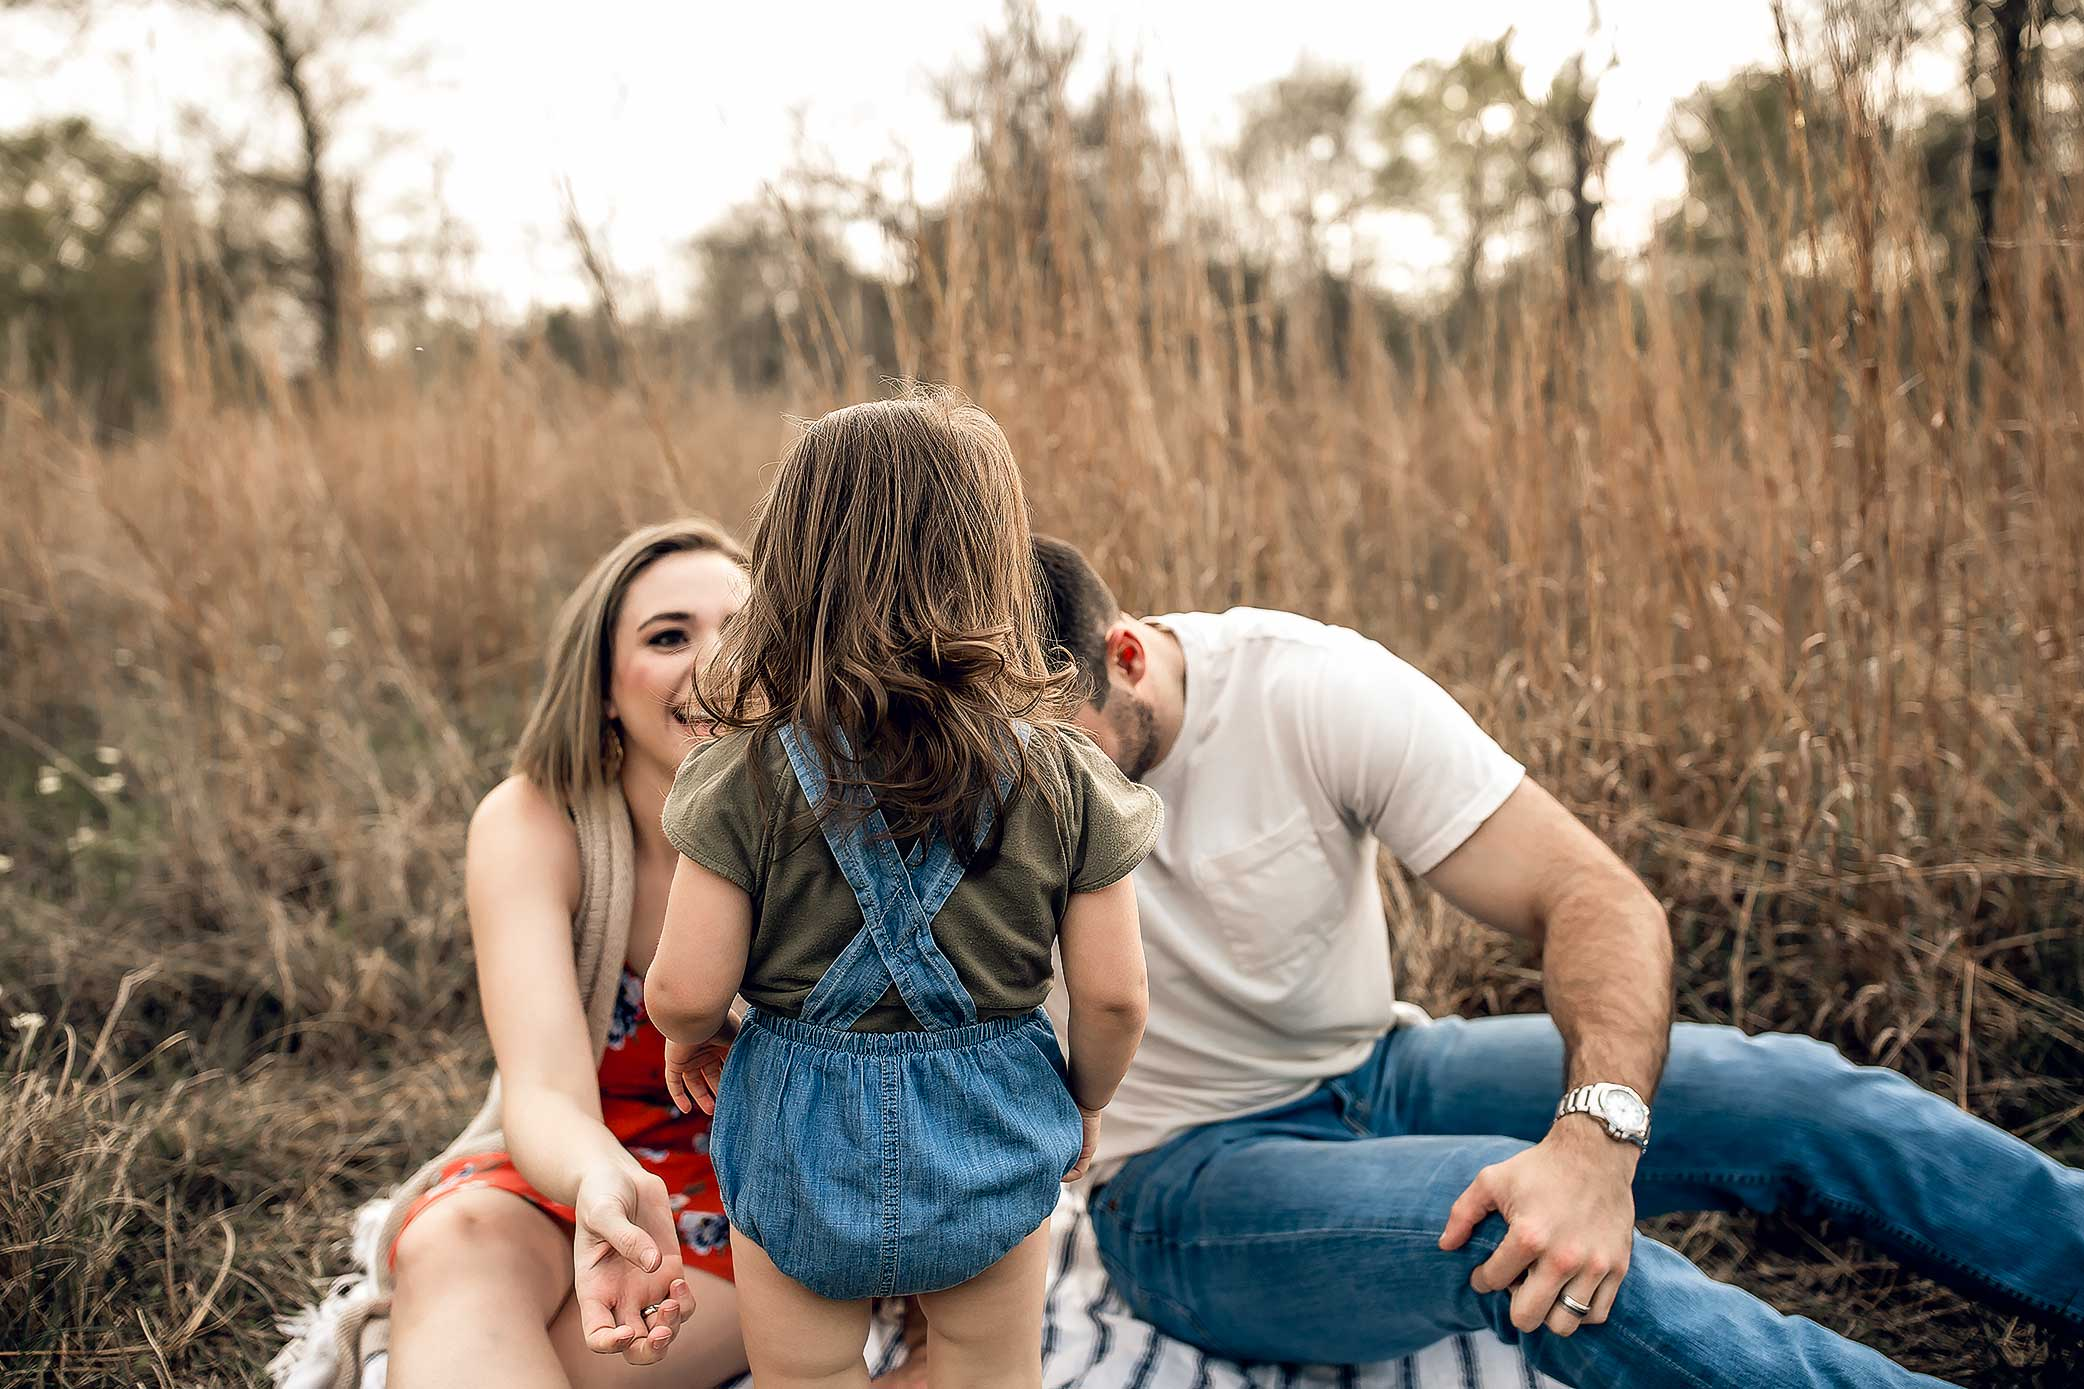 shelby-schiller-photography-sunset-family-pictures-spring-2019-11.jpg